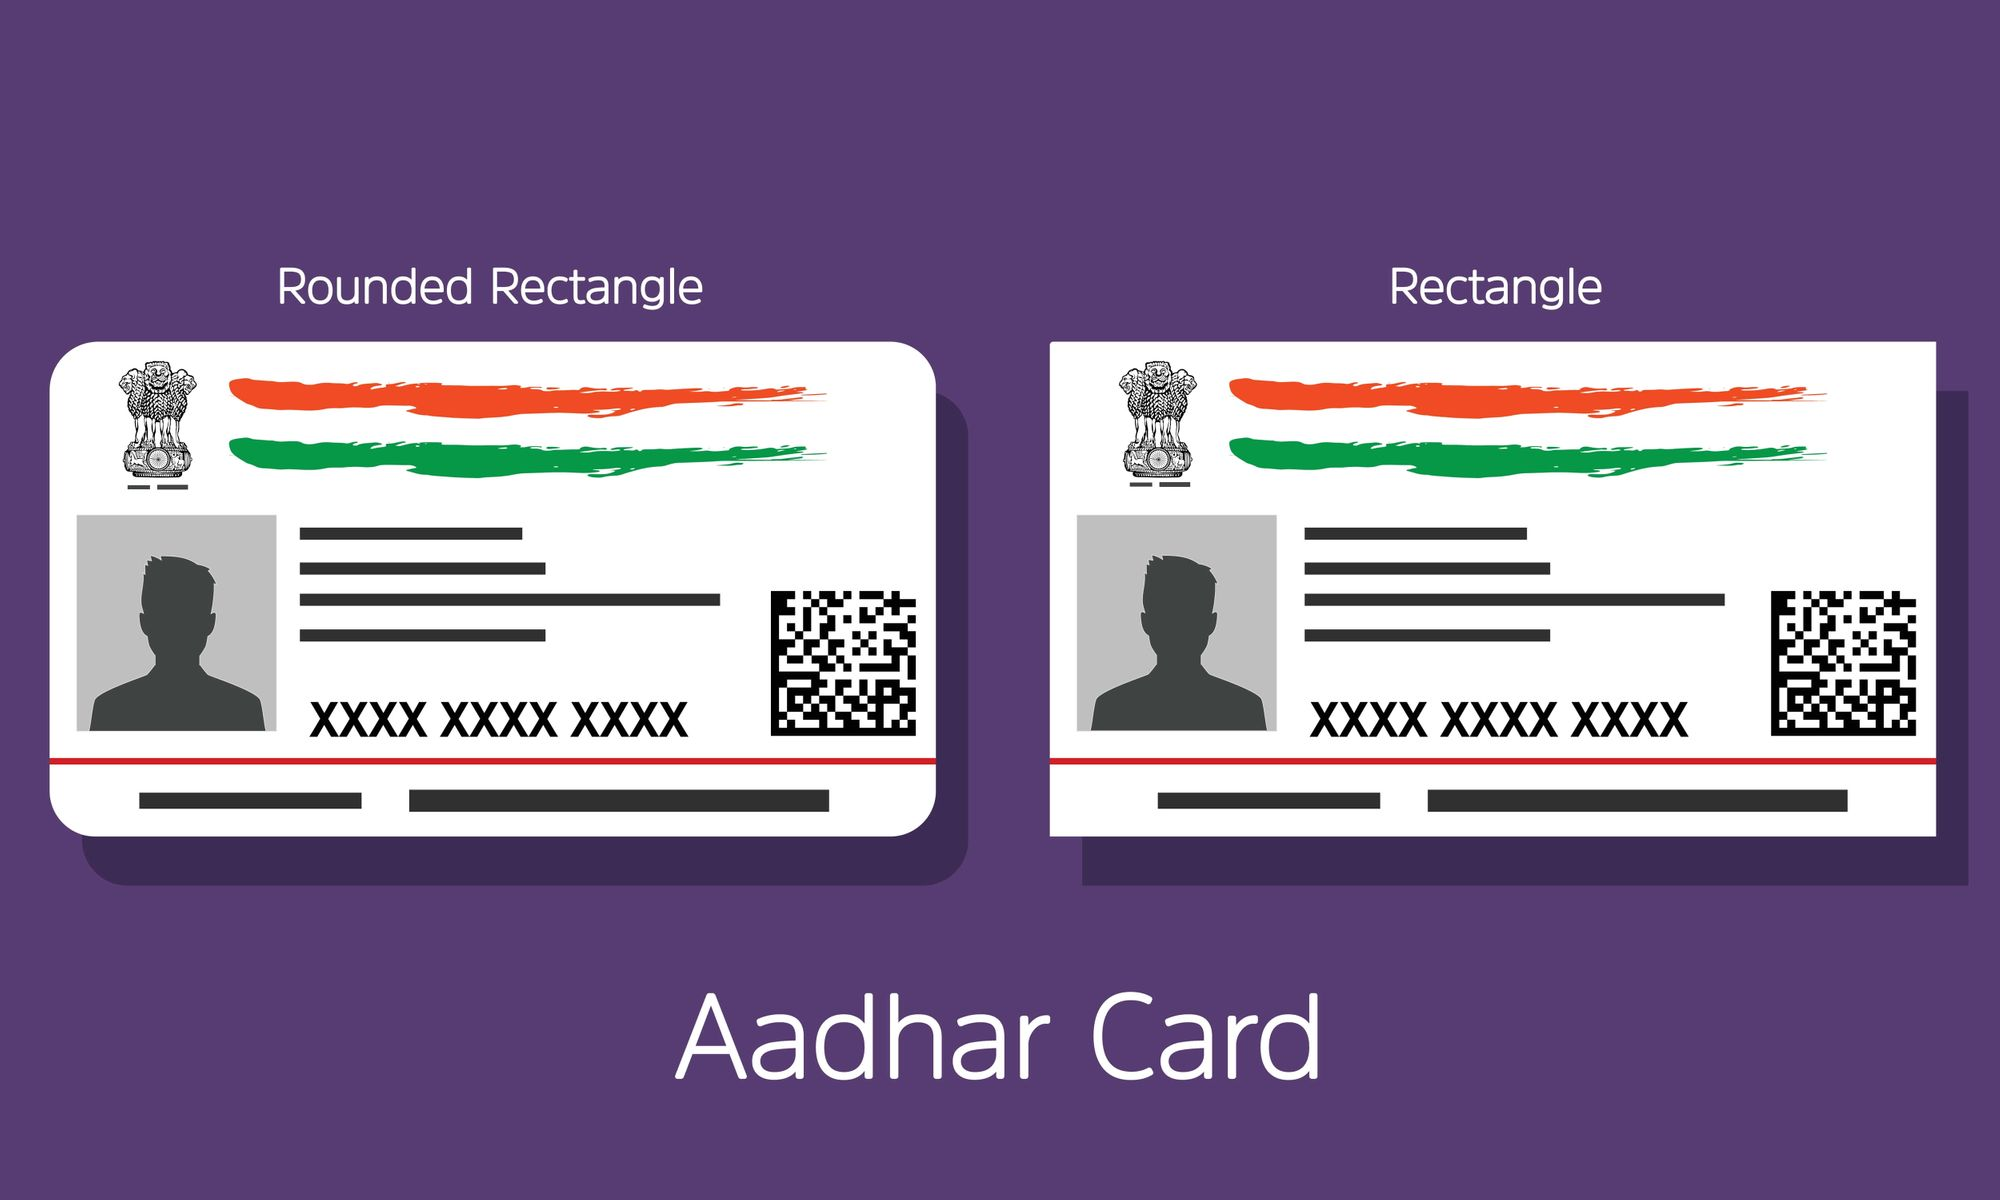 How to open Aadhar card PDF file?